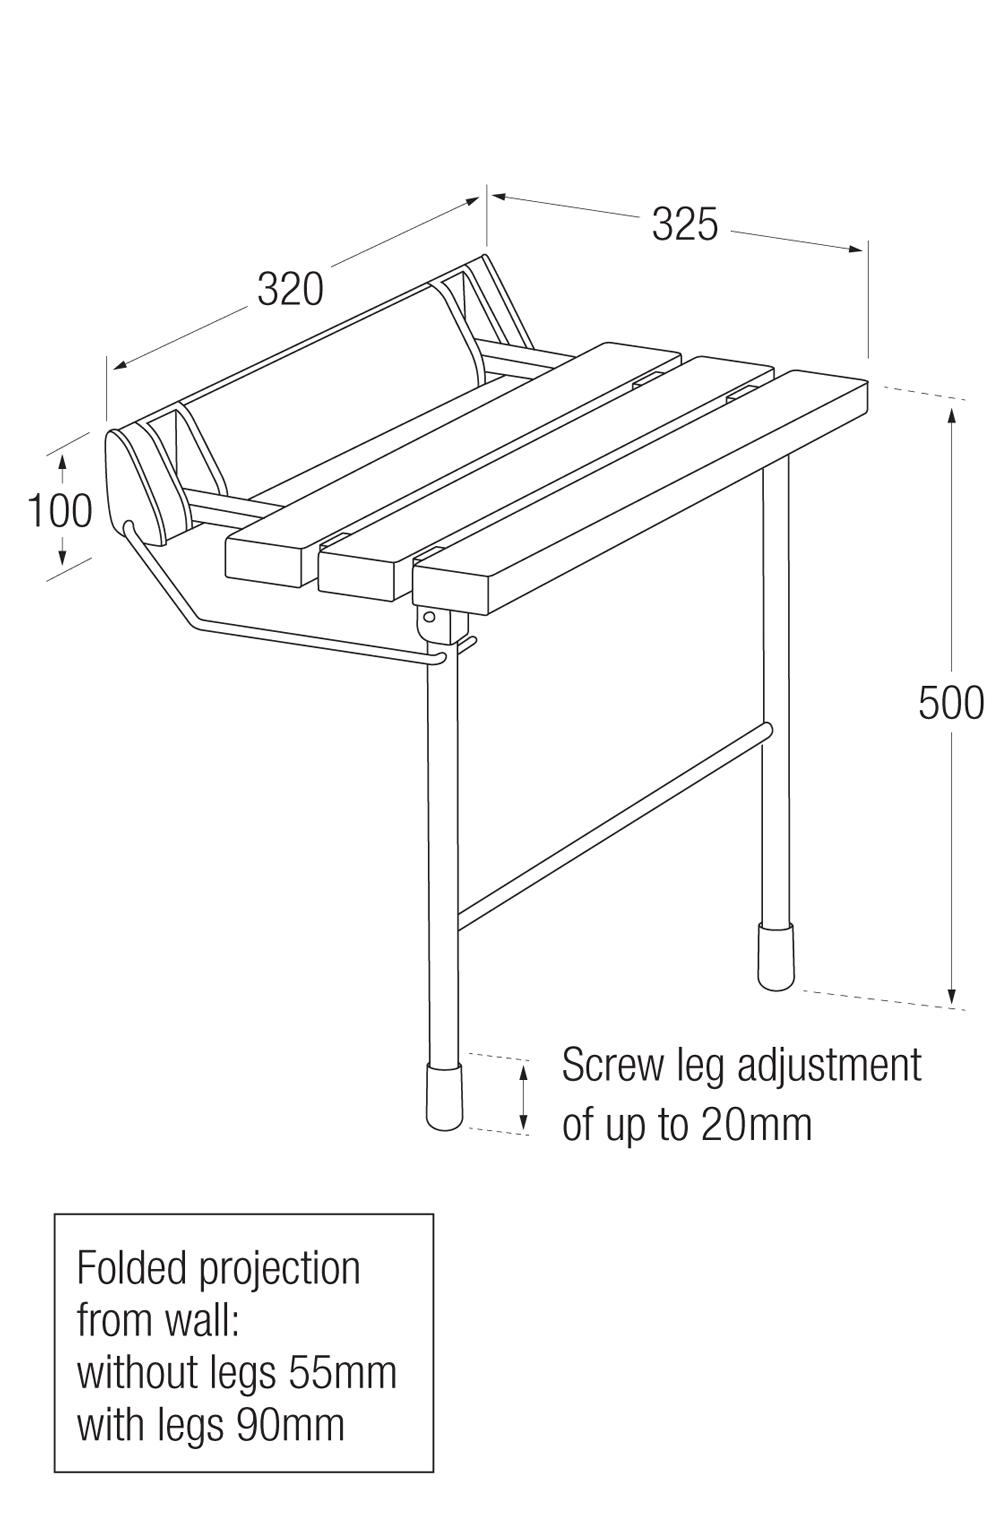 Plastic Slatted Shower Seat Measurement